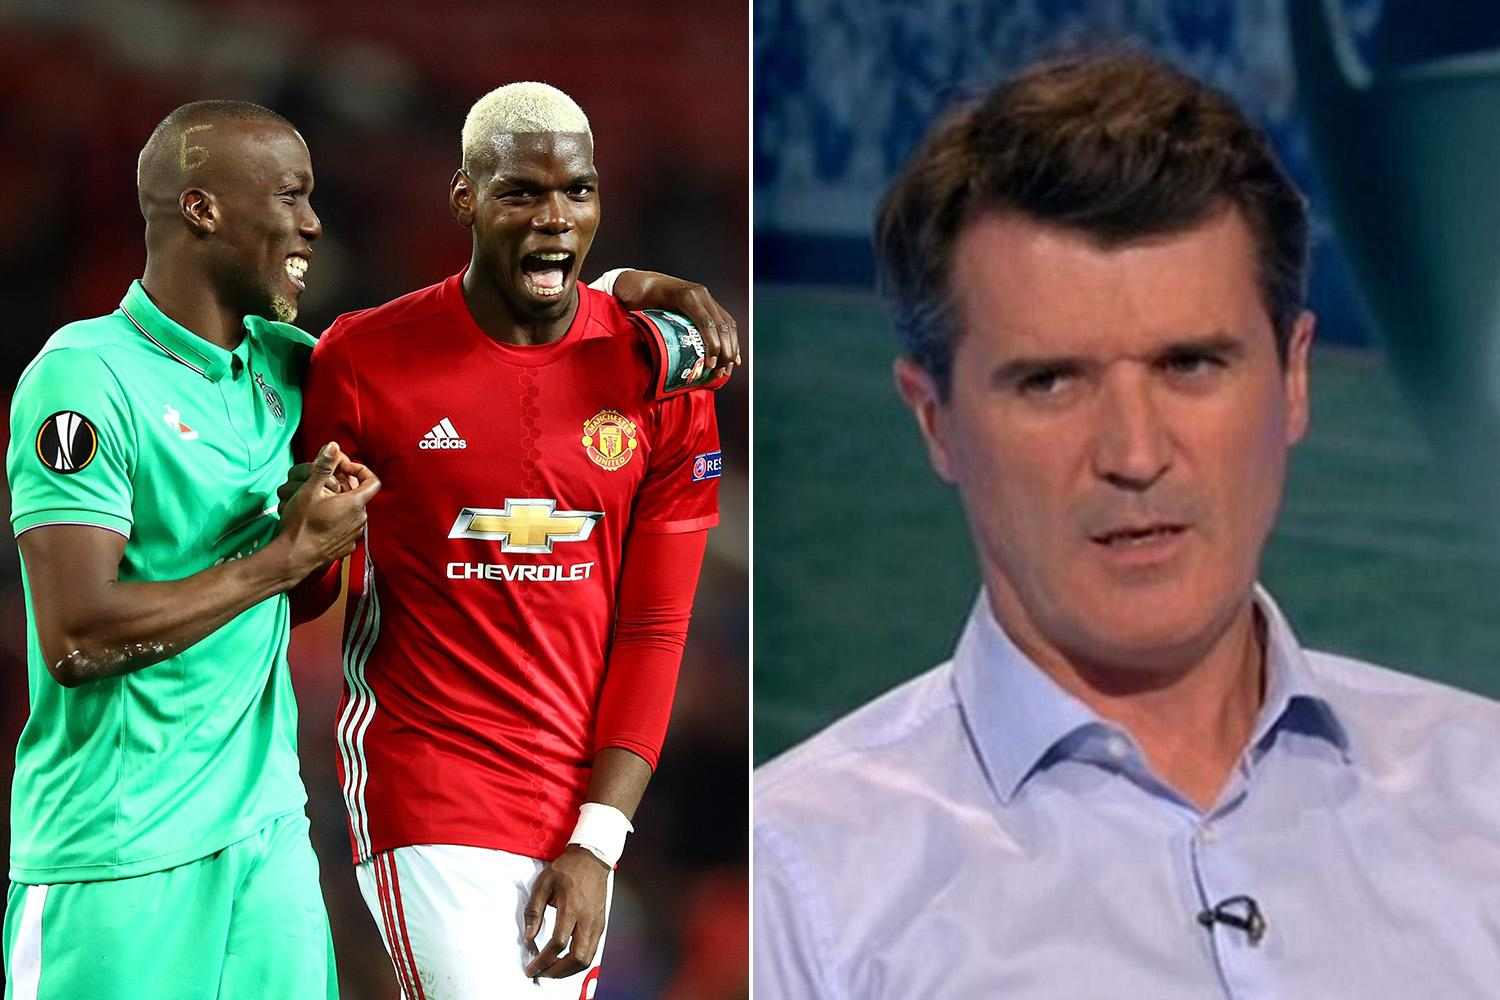 Former Manchester United skipper Roy Keane blasts Paul Pogba for